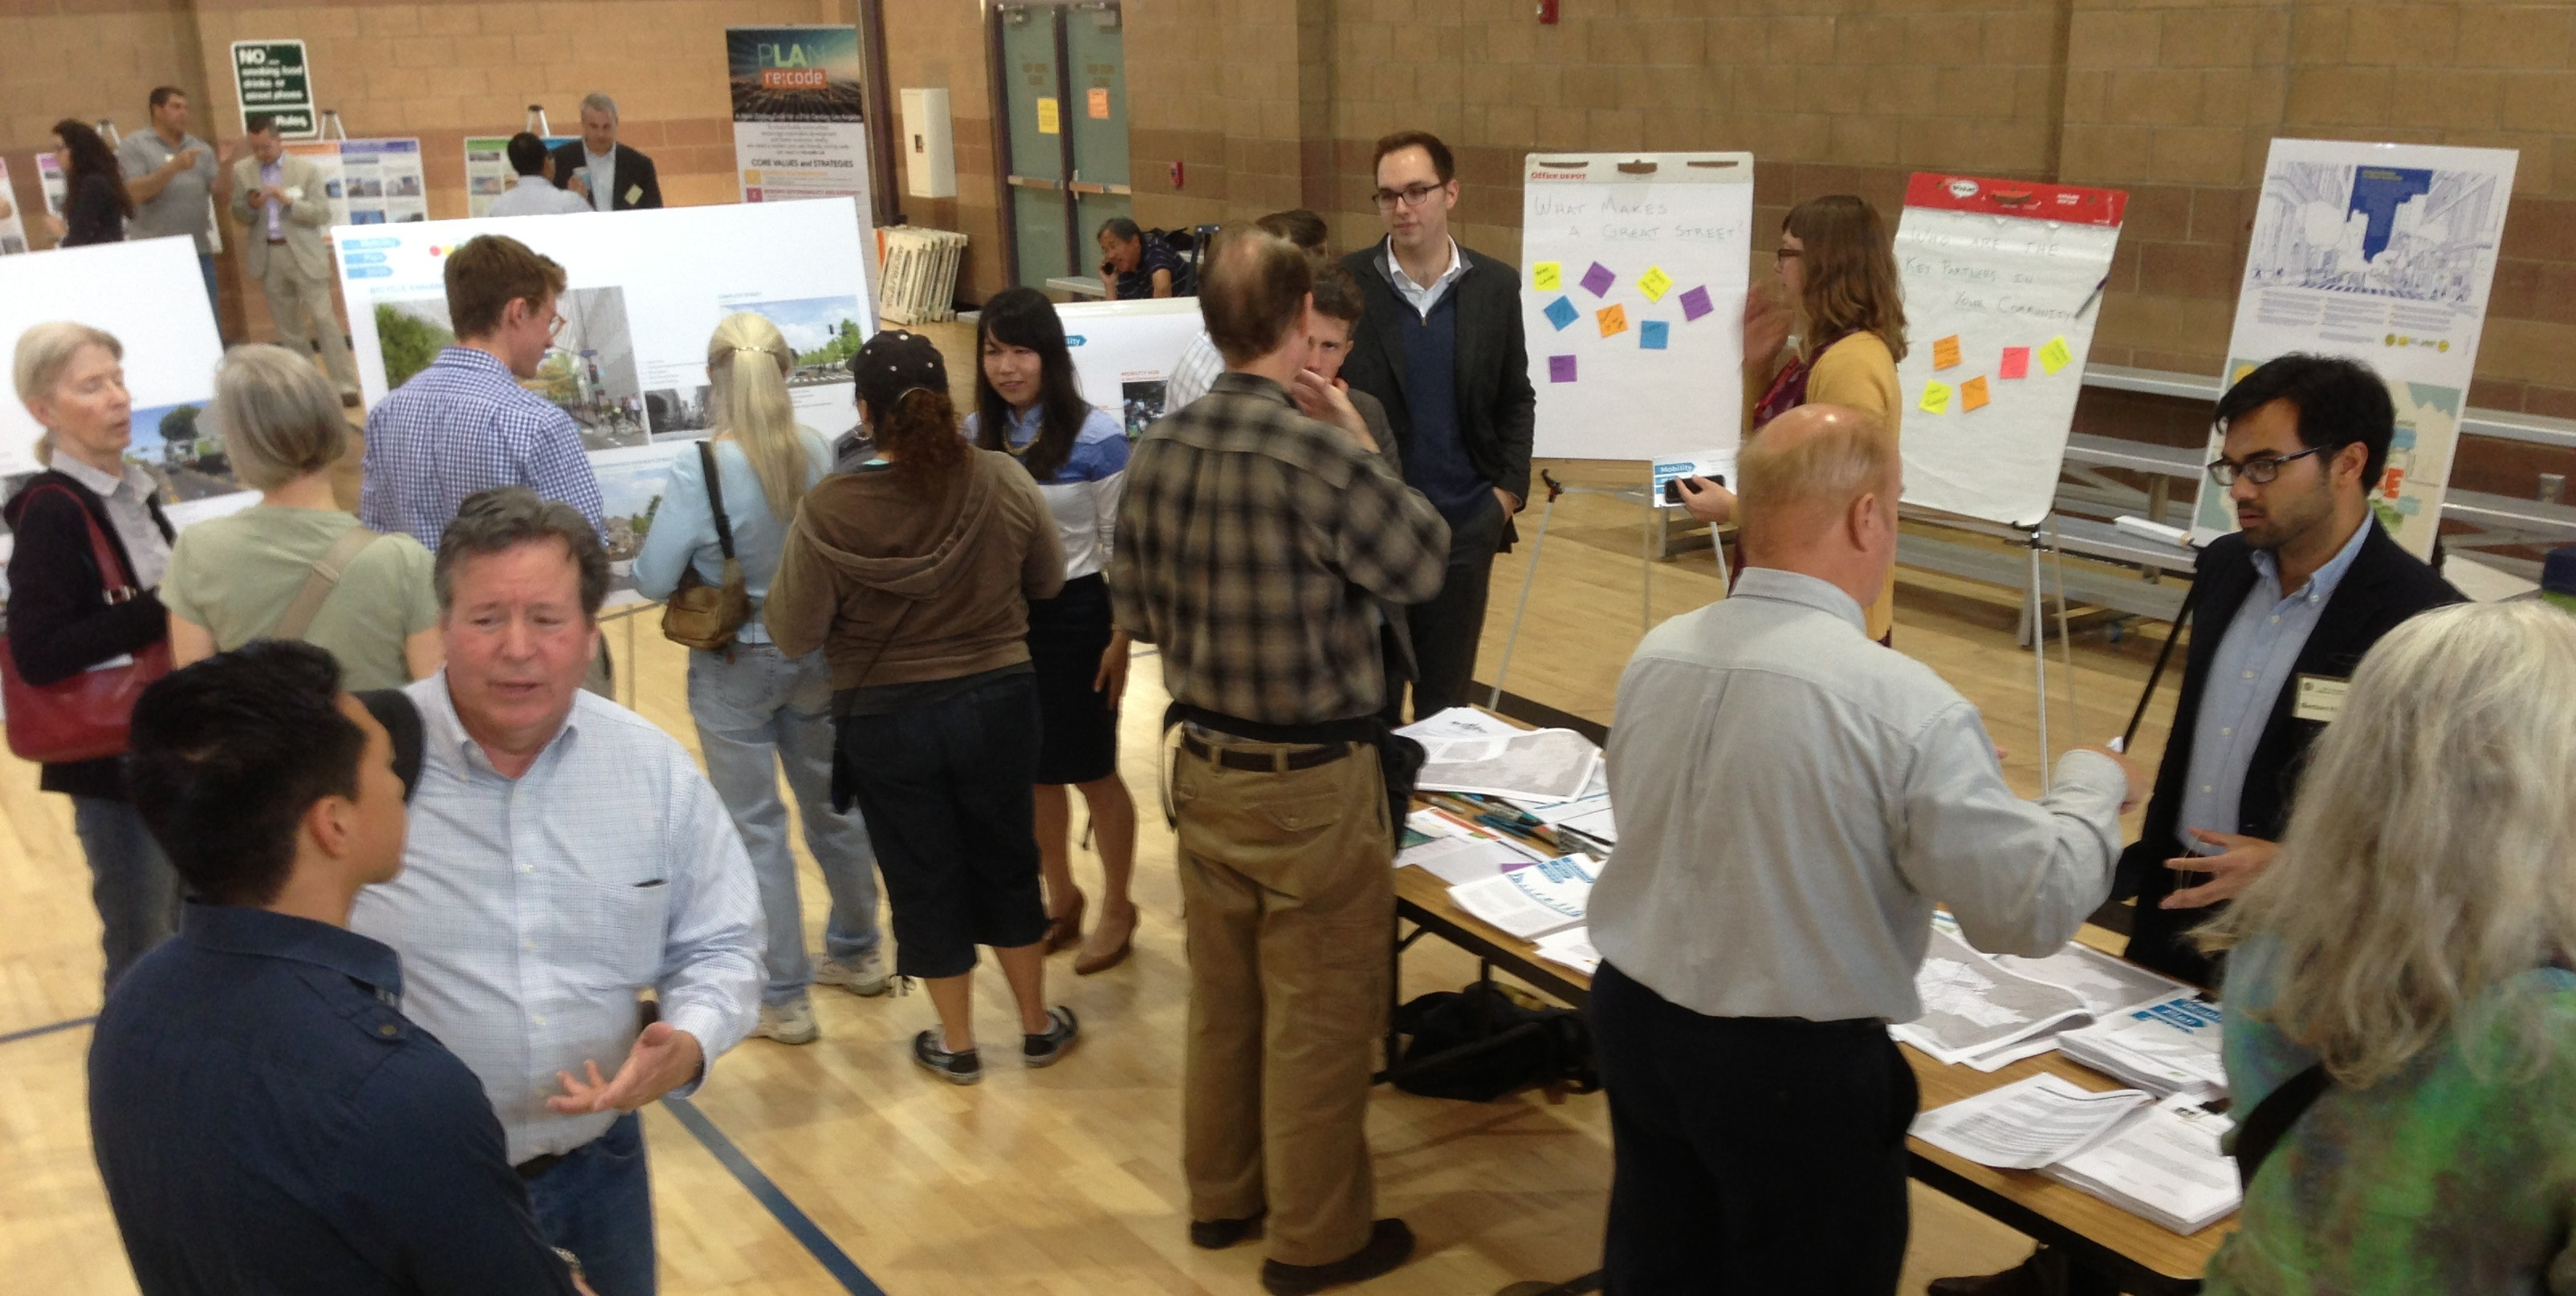 Attendees learn about and comment on L.A. City's draft Mobility Plan 2035 - at last Saturday's community planning forum in Granada Hills. Joe Linton/LA Streetsblog